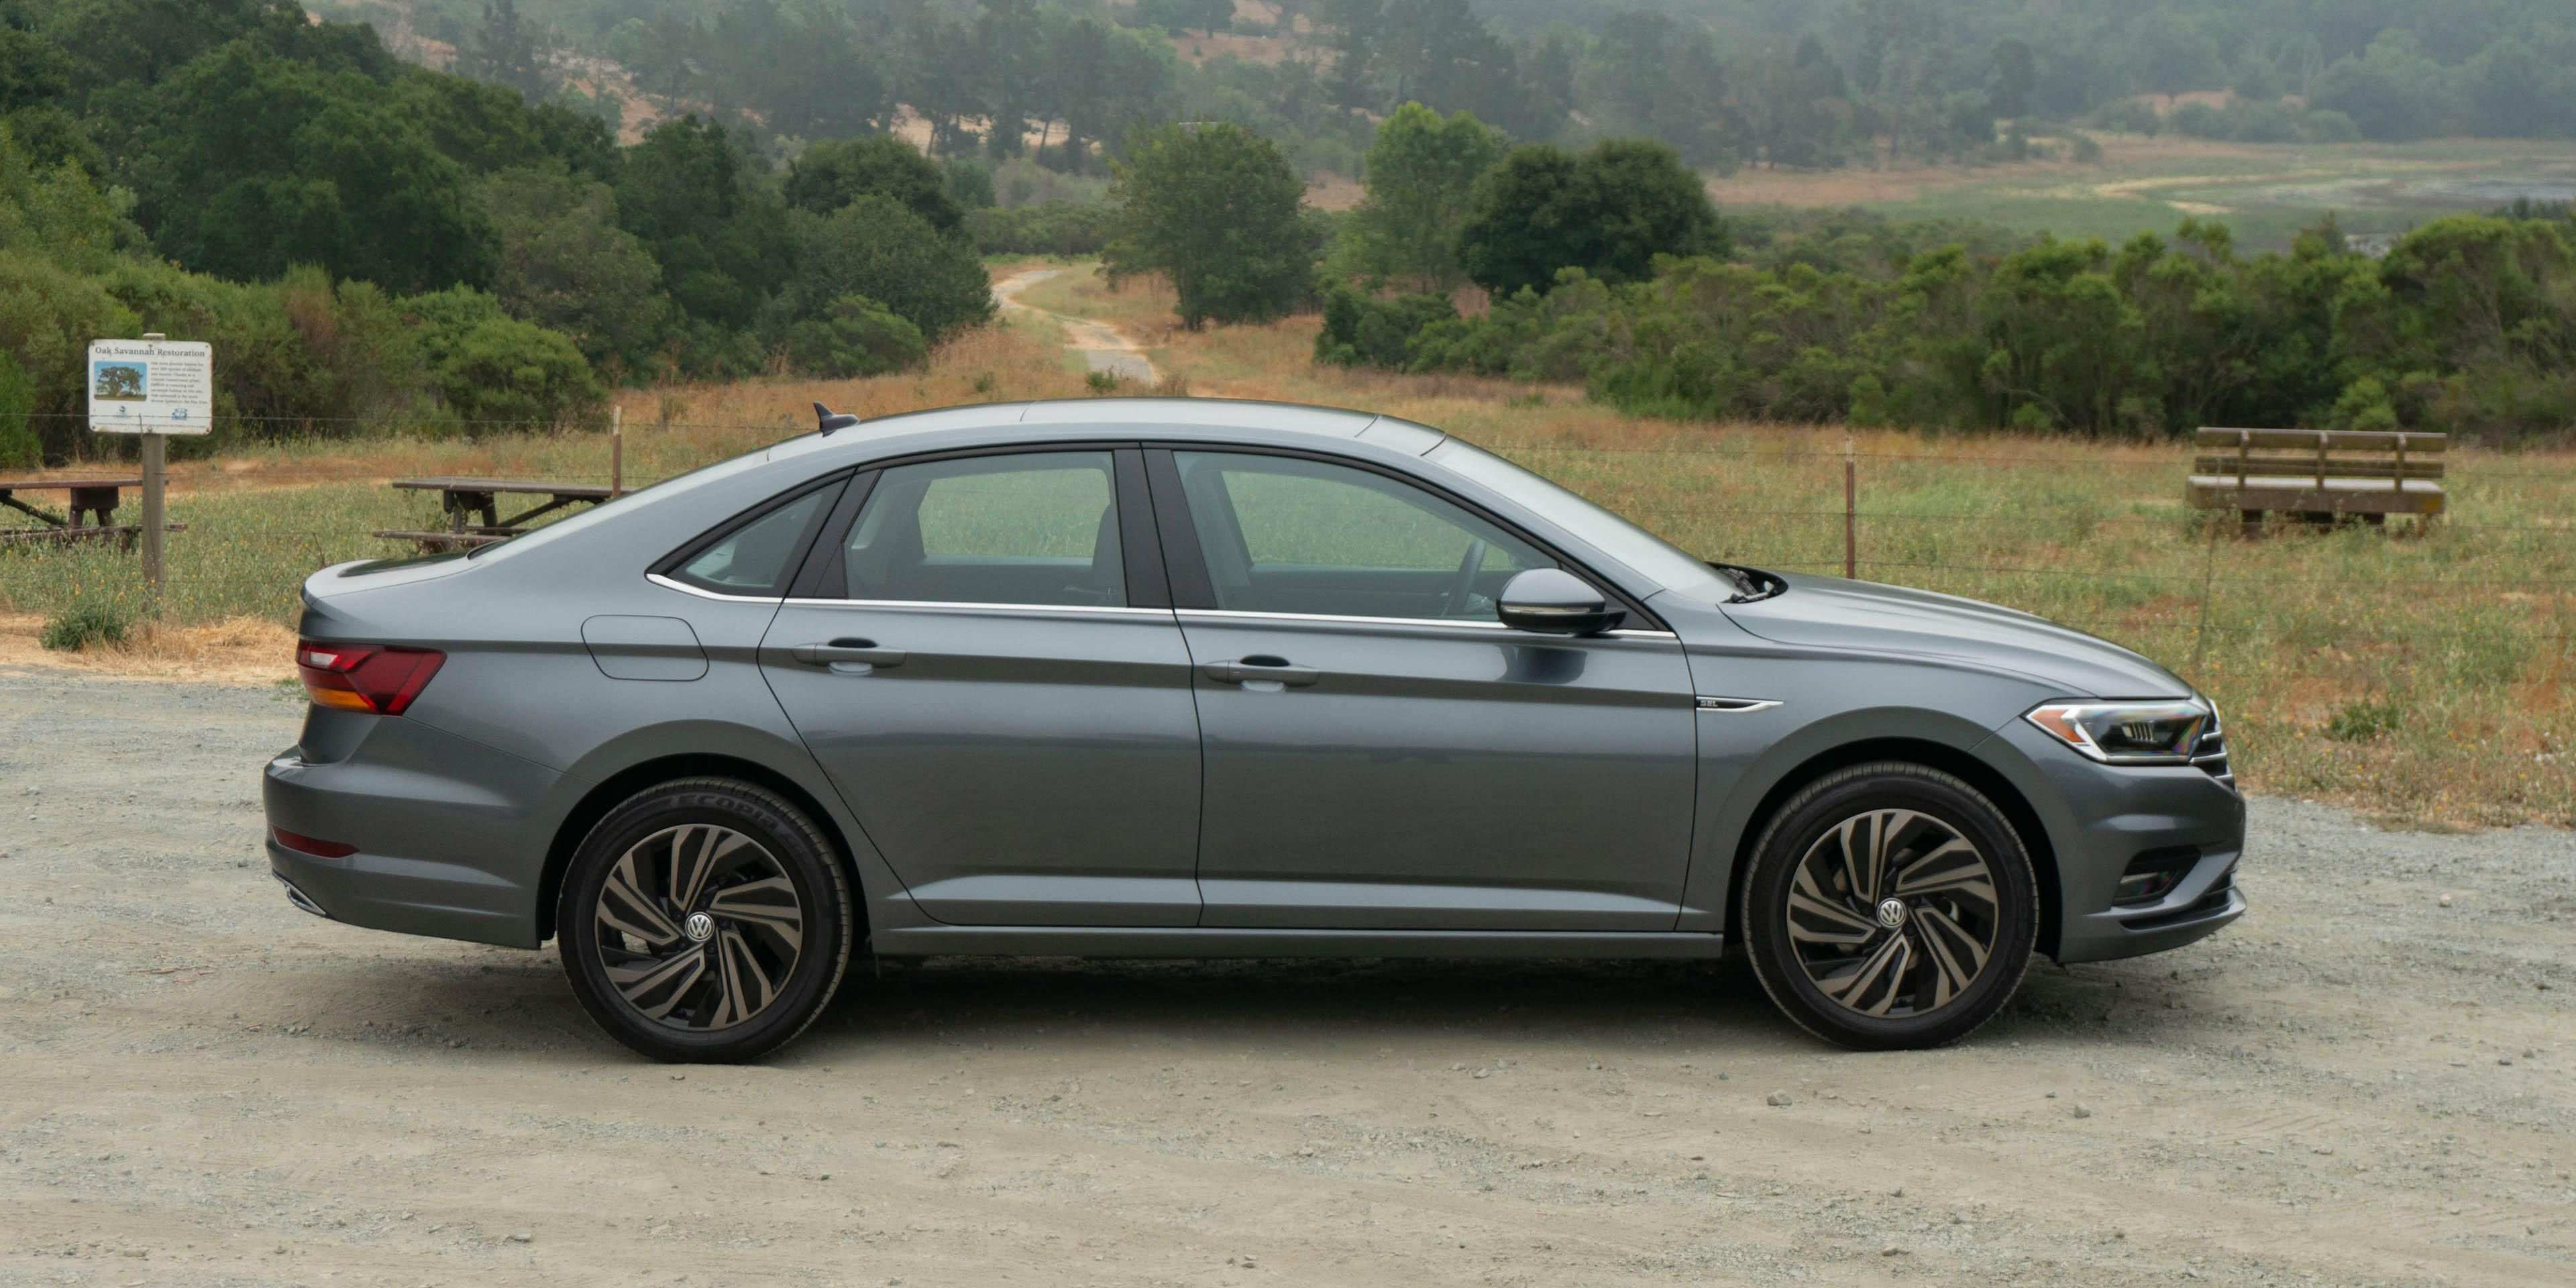 49 All New Volkswagen Jetta 2019 India Price And Review